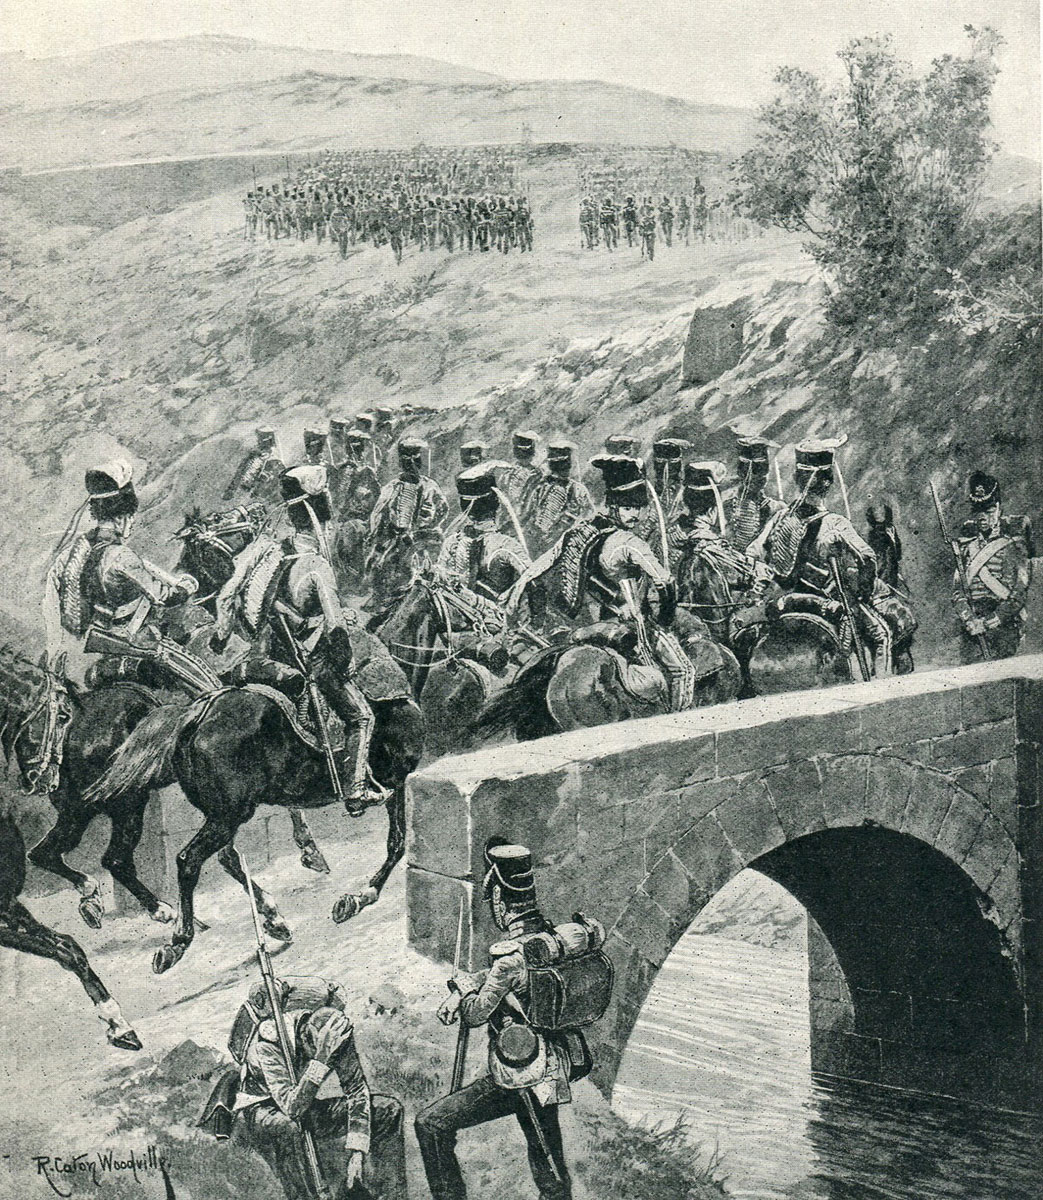 15th King's Light Dragoons (15th Hussars) crossing the bridge at Tres Puentes in the Battle of Vitoria on 21st June 1813 during the Peninsular War: picture by Richard Caton Woodville